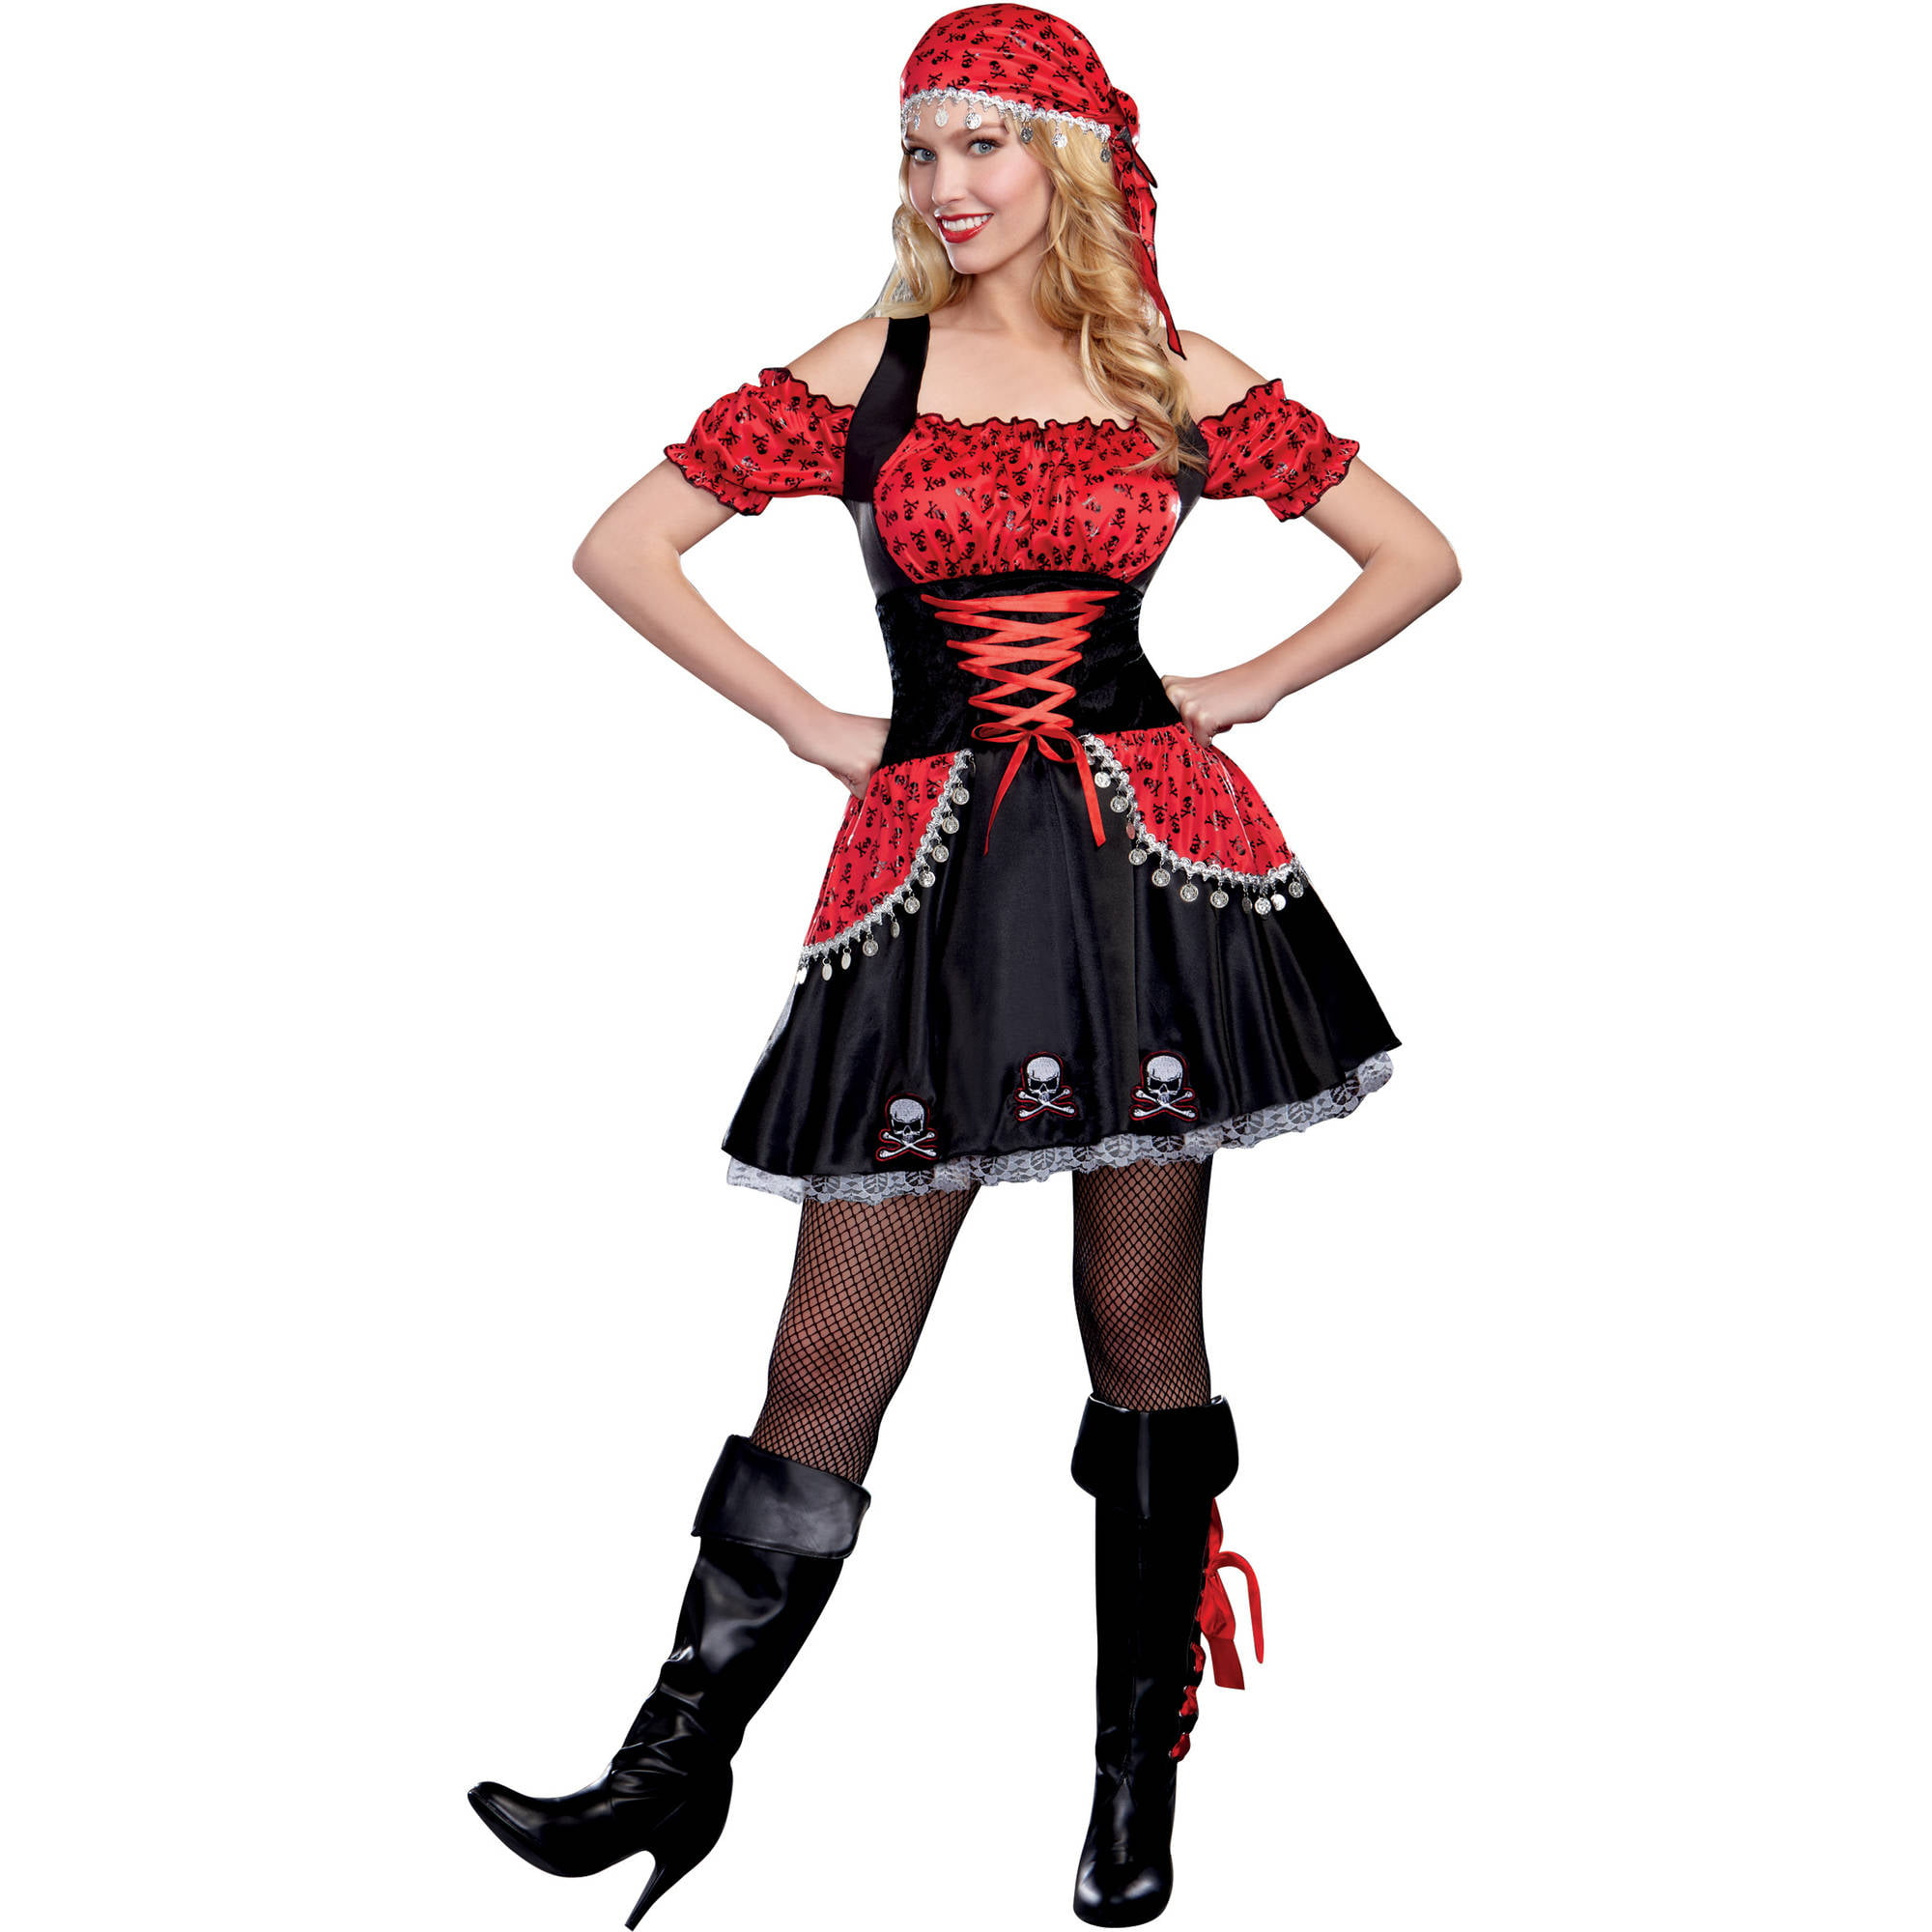 sc 1 st  Walmart & Pirate Beauty Womenu0027s Adult Halloween Costume - Walmart.com